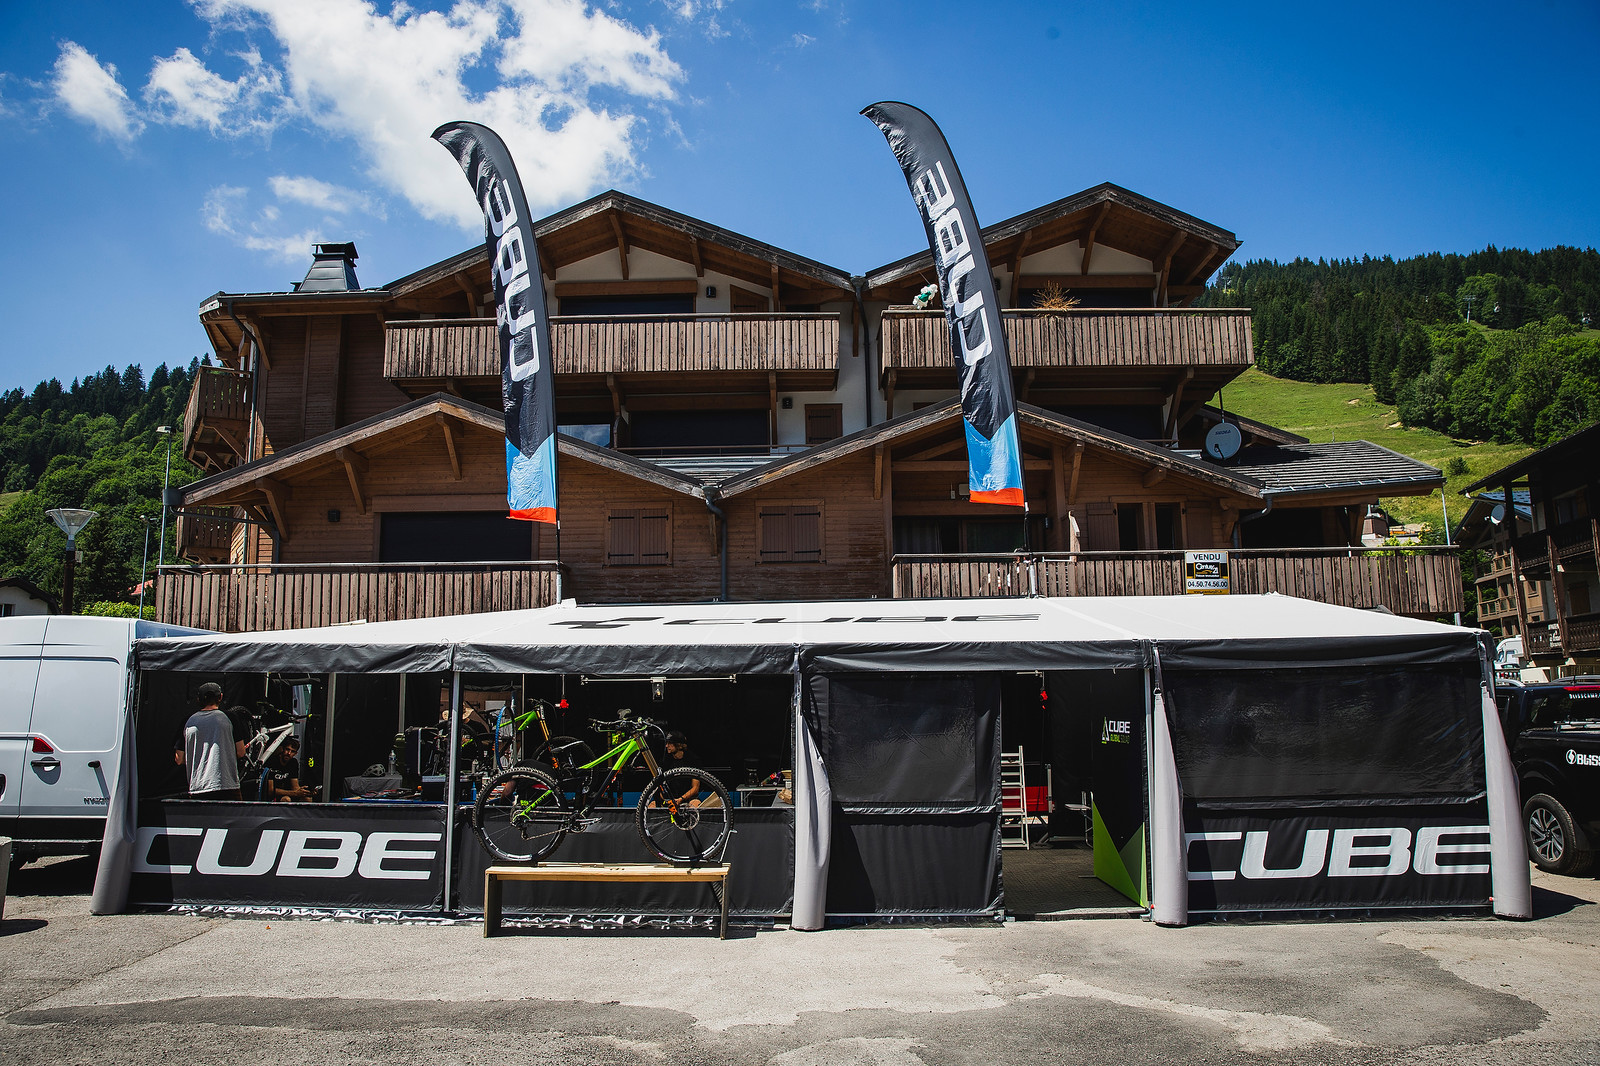 Cube Global Squad Pits - PIT BITS - 2019 Les Gets World Cup DH, France - Mountain Biking Pictures - Vital MTB